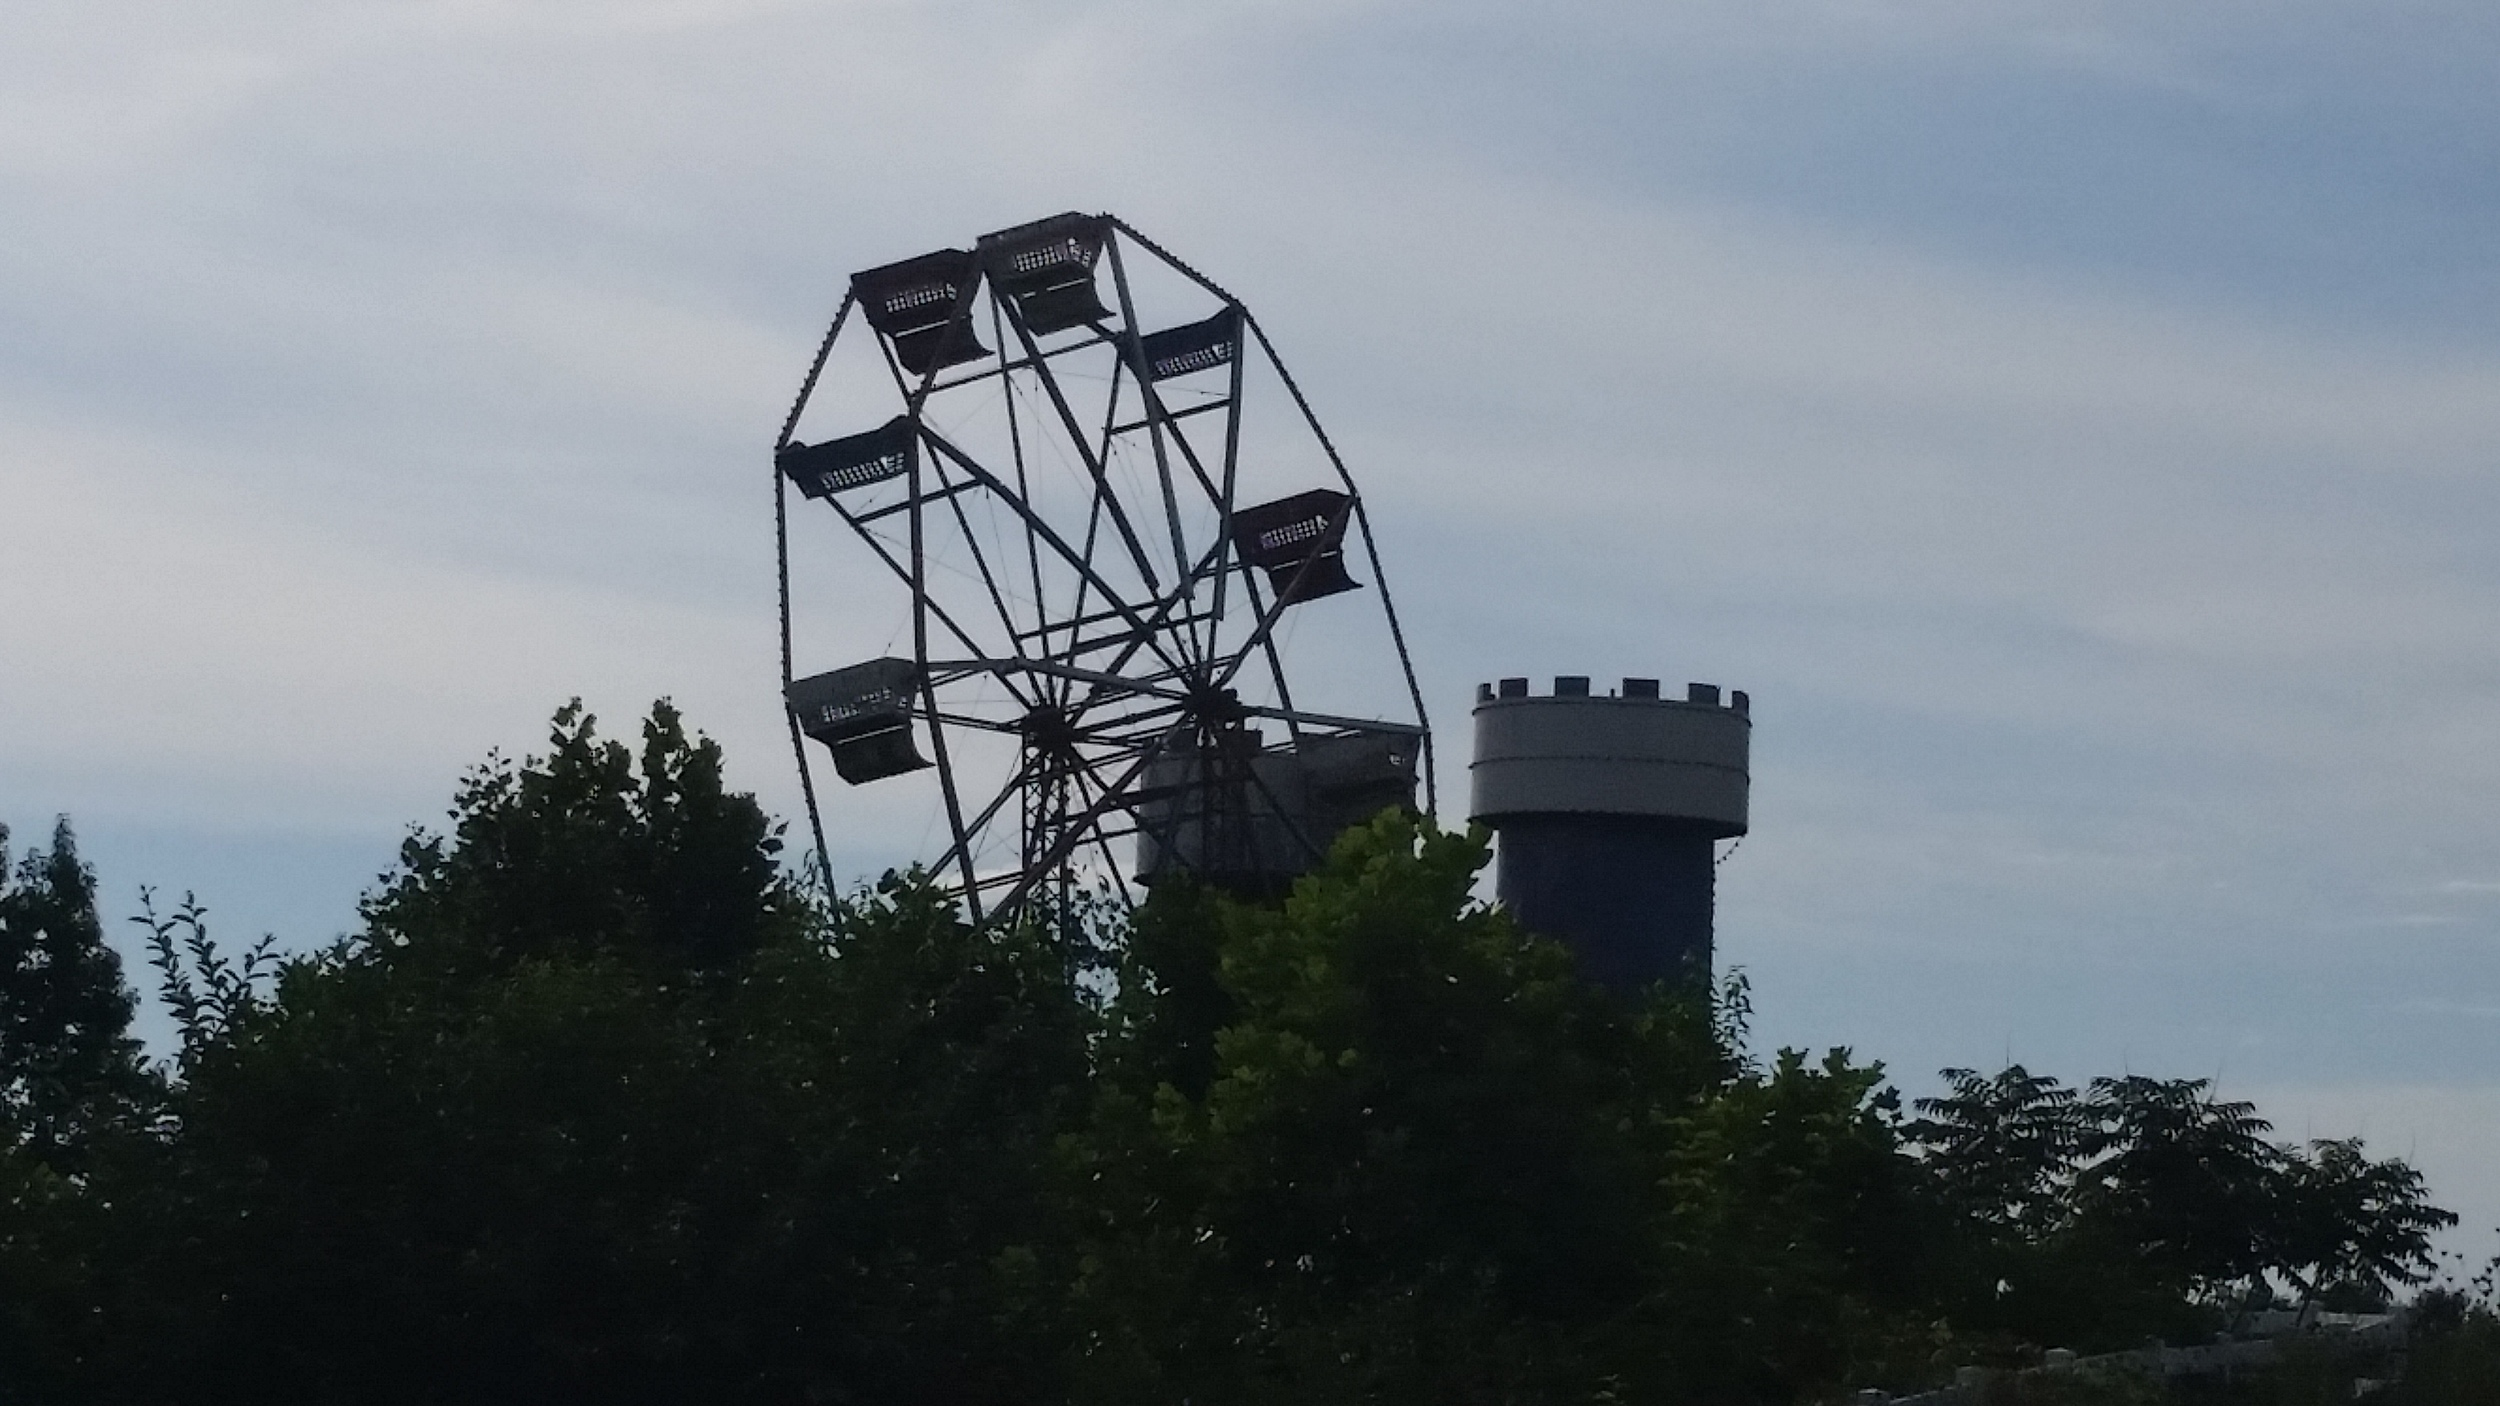 I really wanted to explore this abandoned amusement park we passed between Cincinnati and Tennessee, but it just wasn't possible. But I did snap this shot of the overgrown, lopsided ferris wheel.